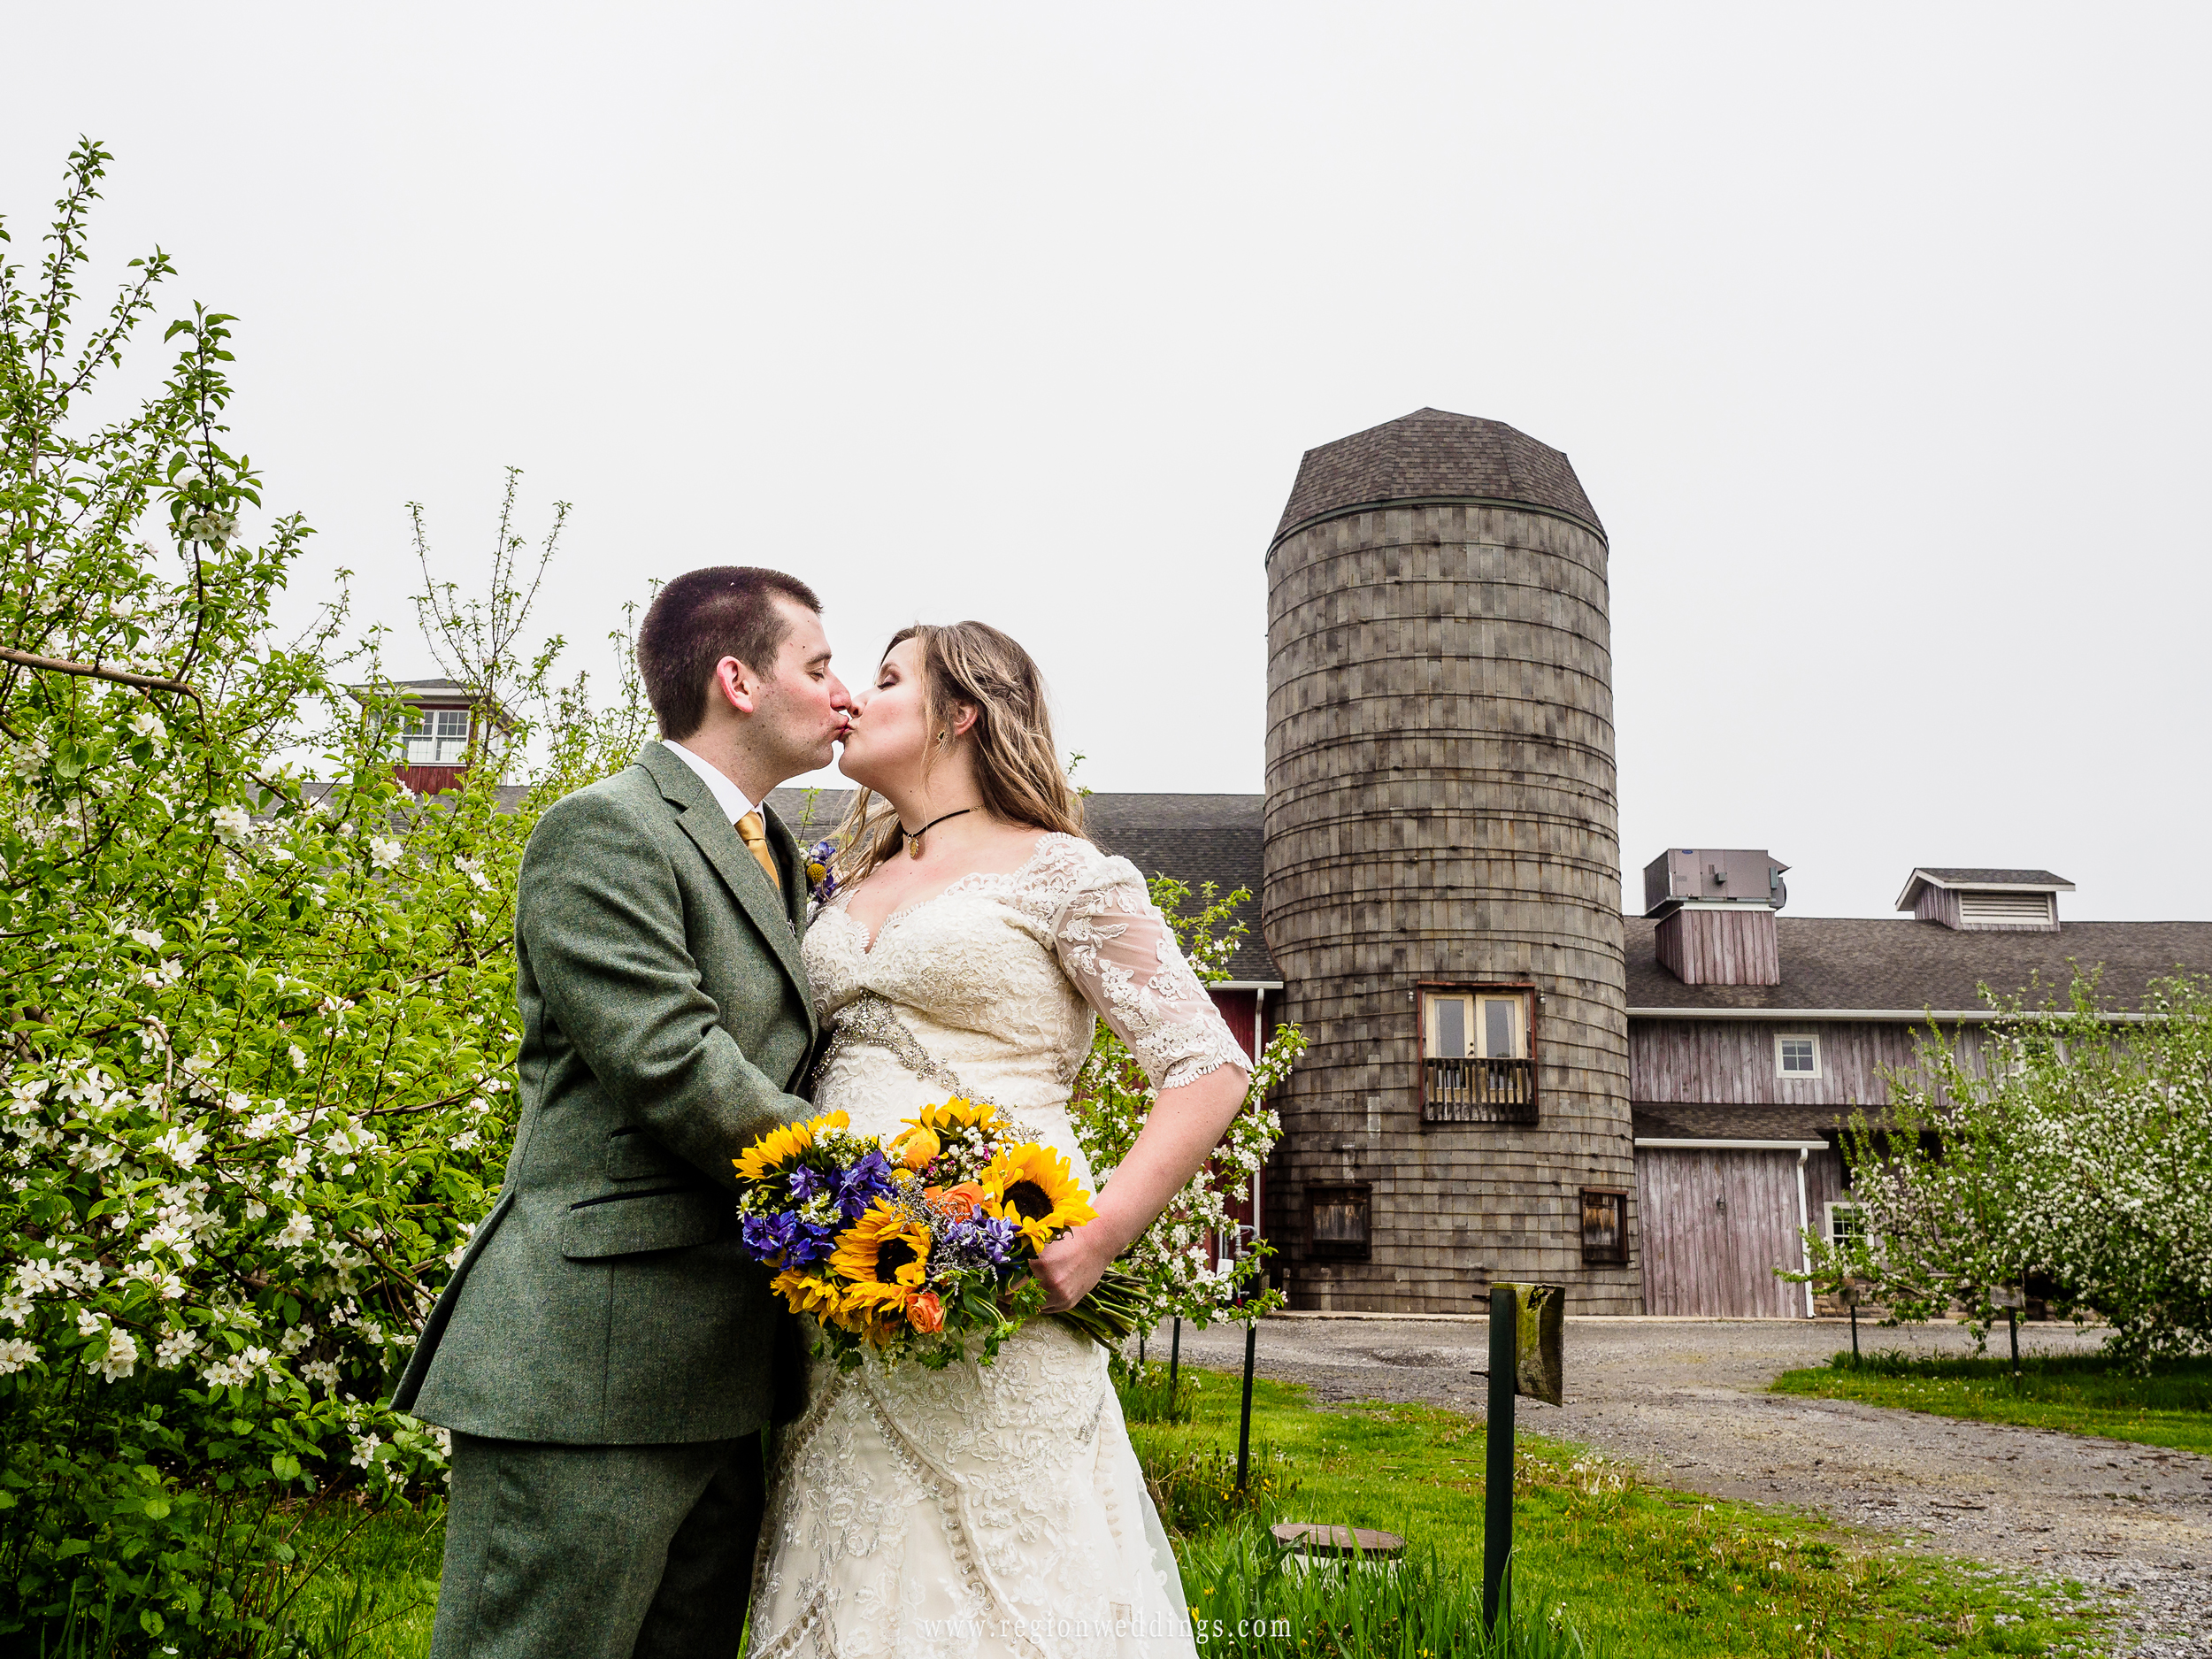 Bride and groom kiss with the rustic grain silo in the background.